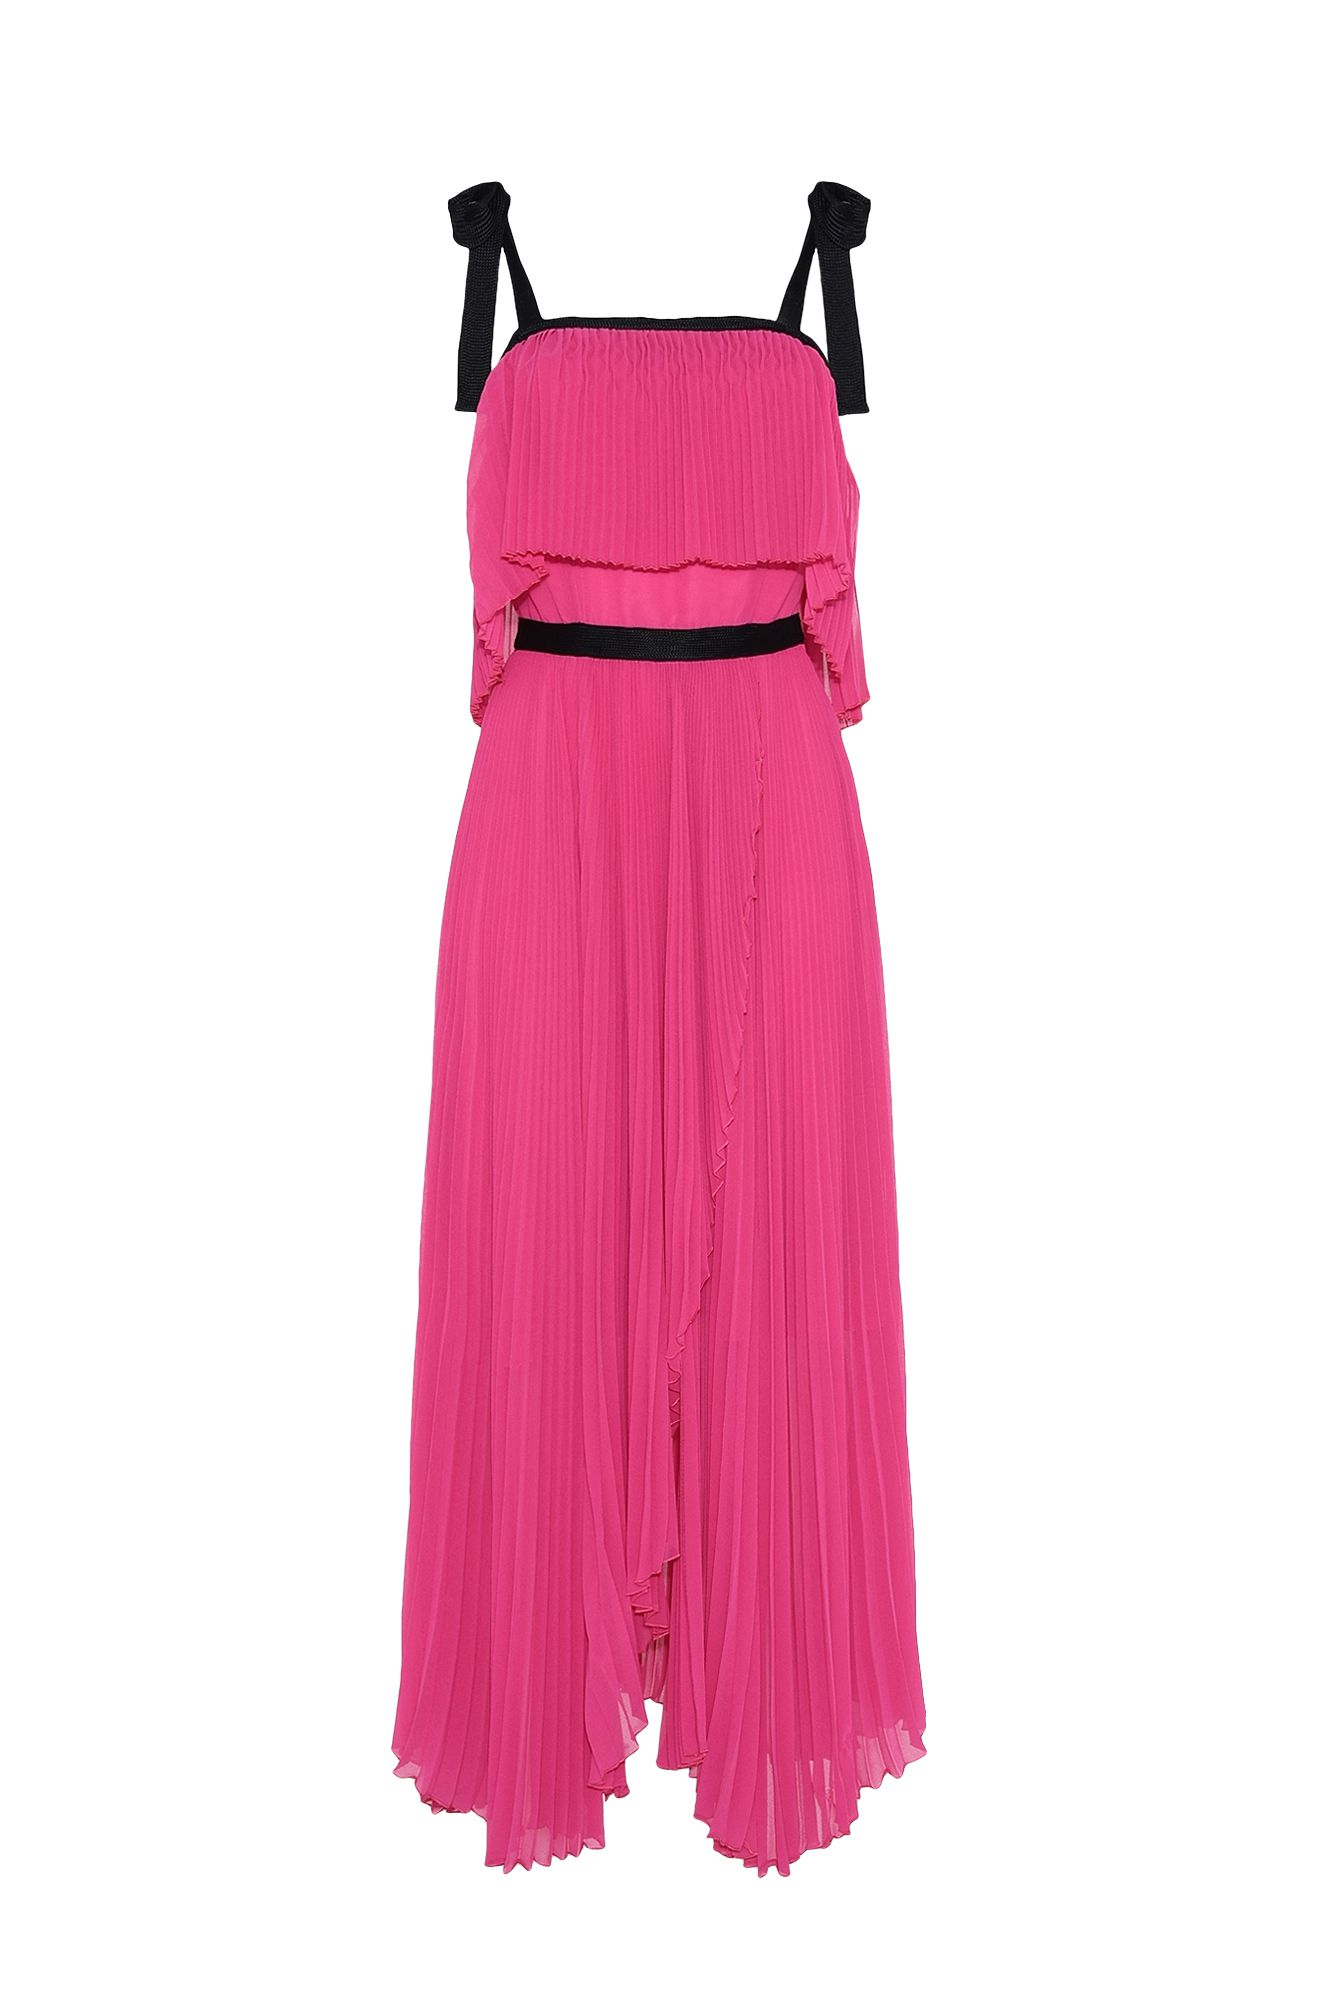 Fuchsia seventies dress